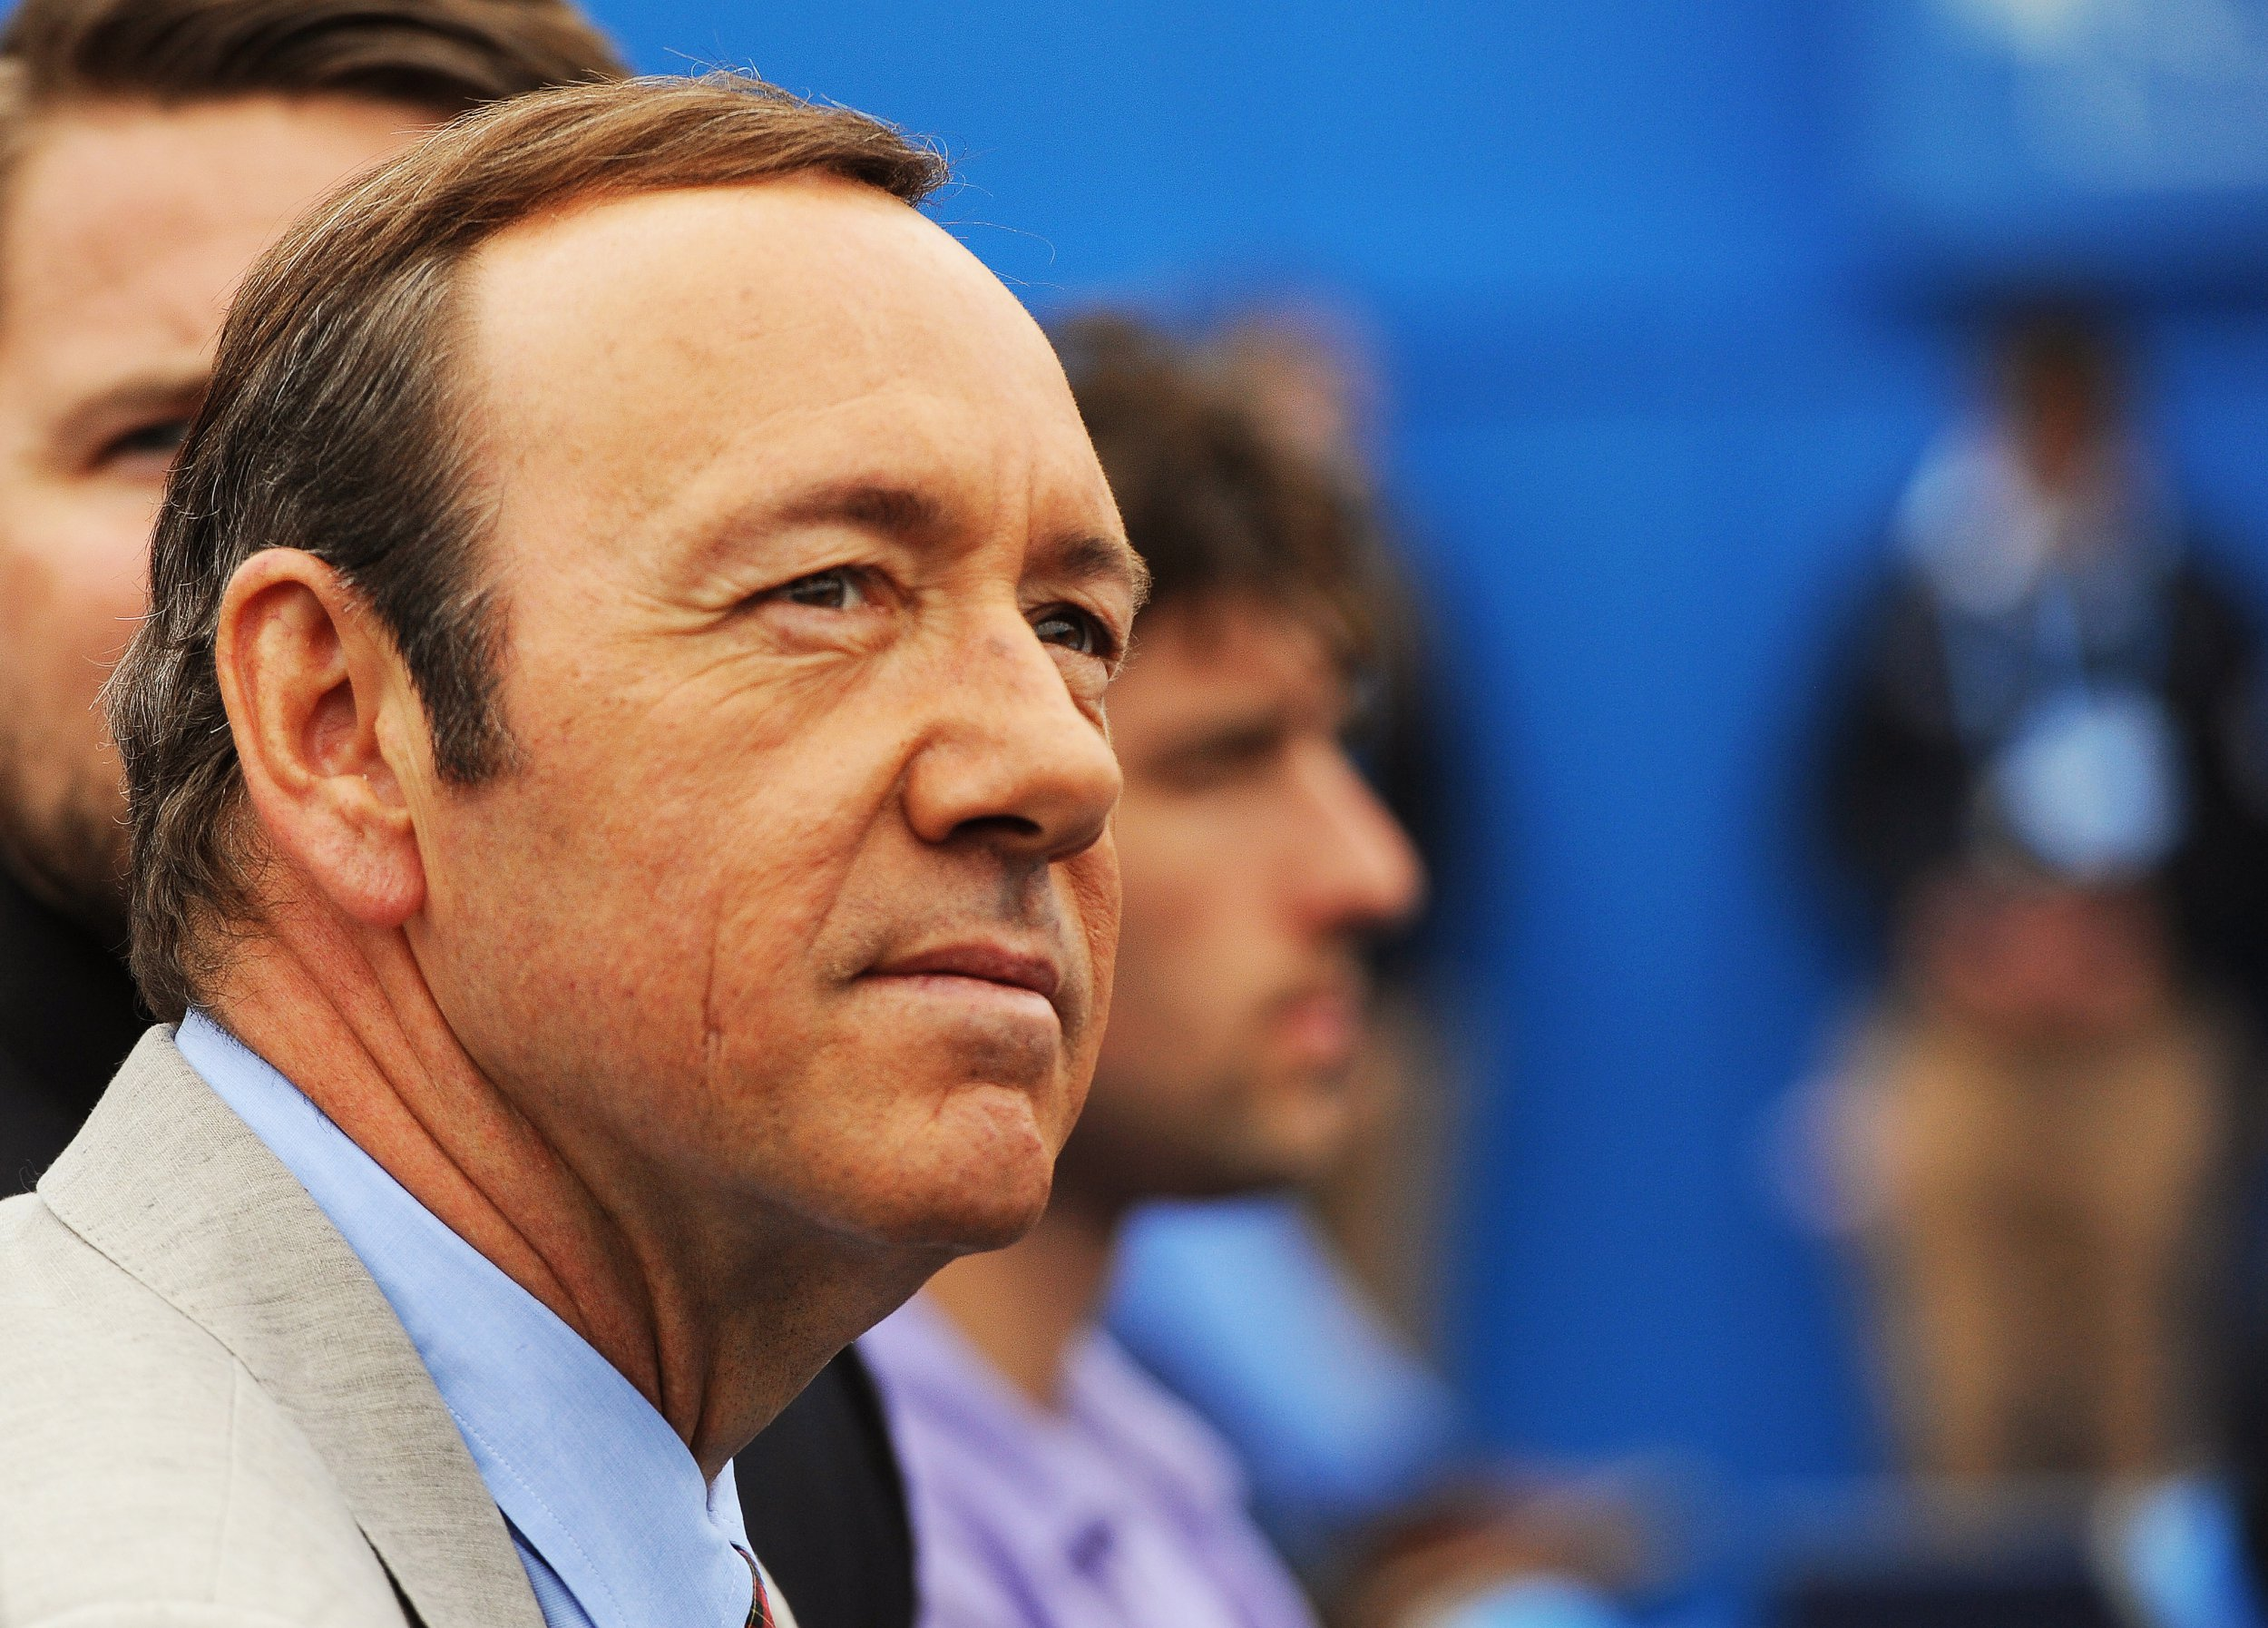 Kevin Spacey won't be charged over historic sexual assault allegations dating back to 1992